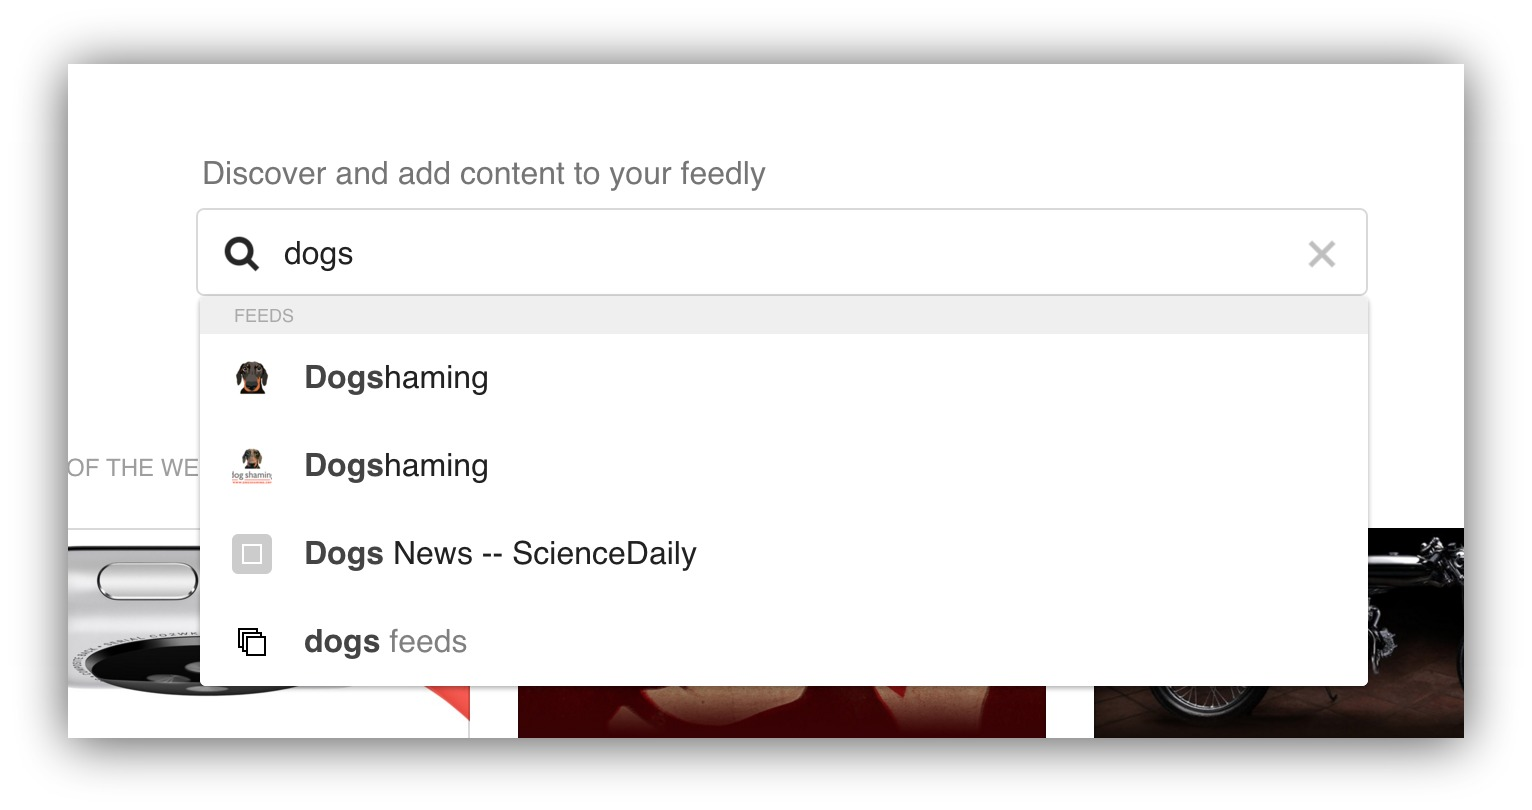 feedly keyword suggestions